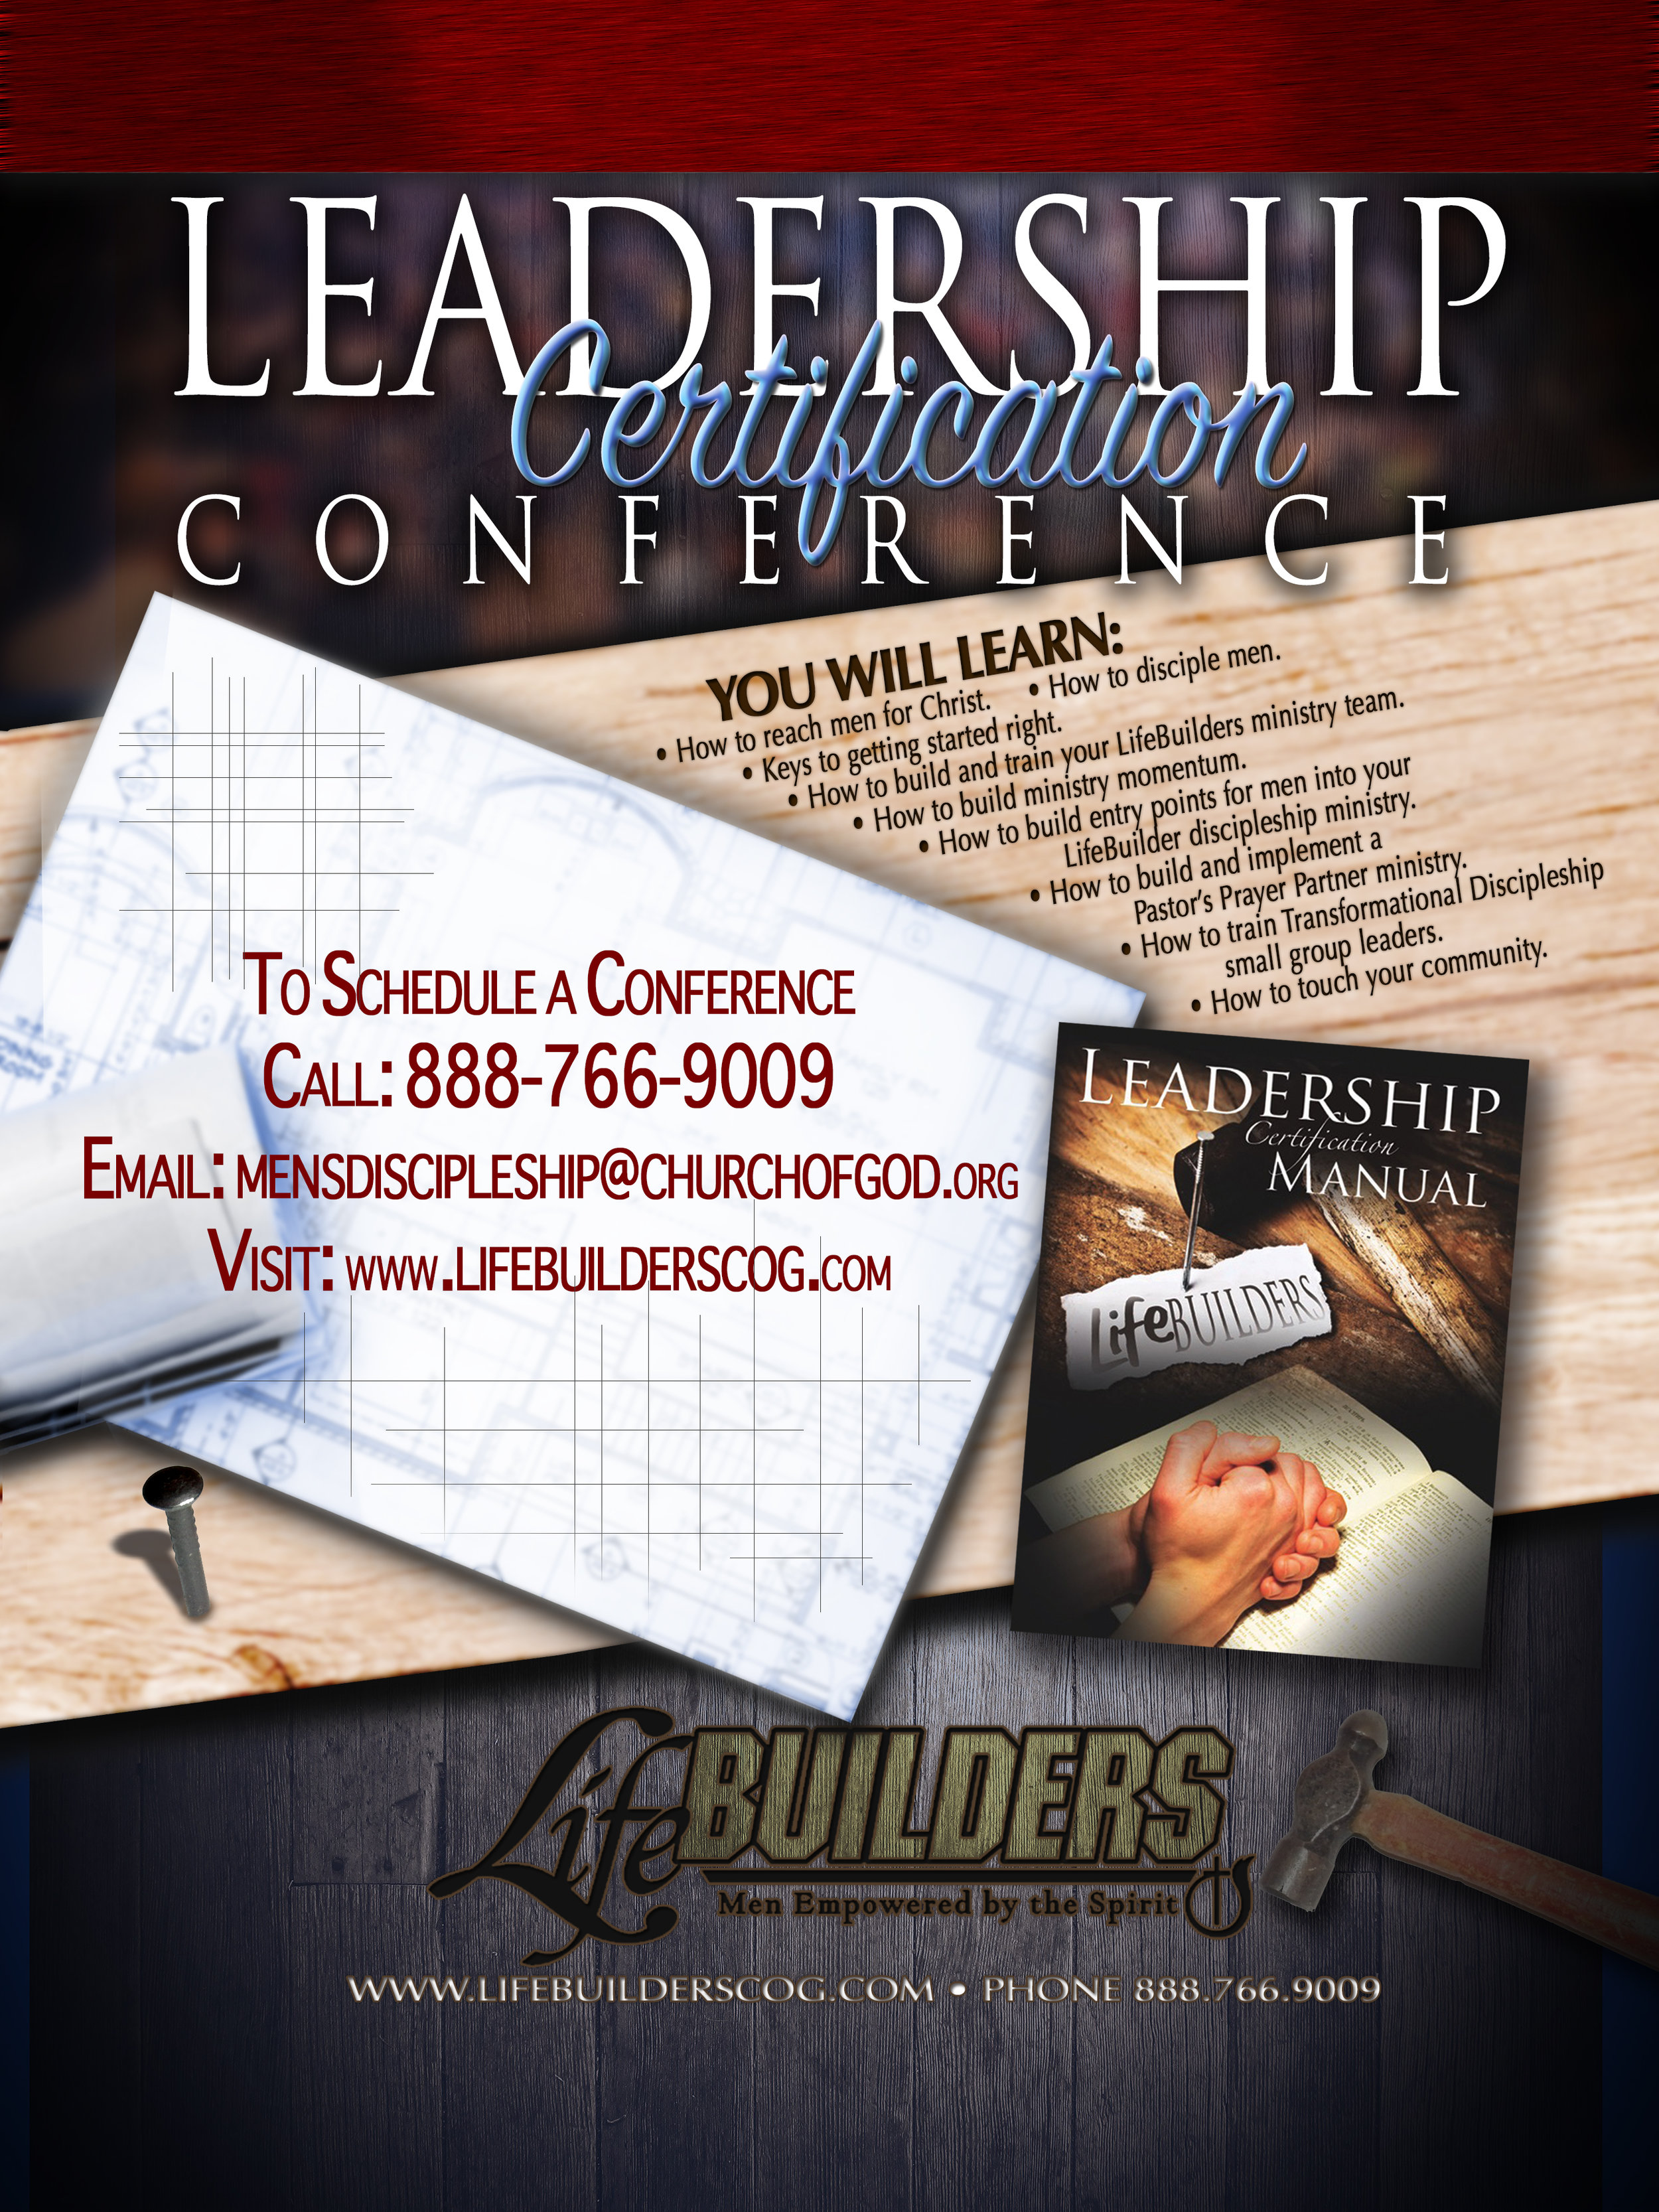 CLICK HERE TO SCHEDULE A CONFERENCE